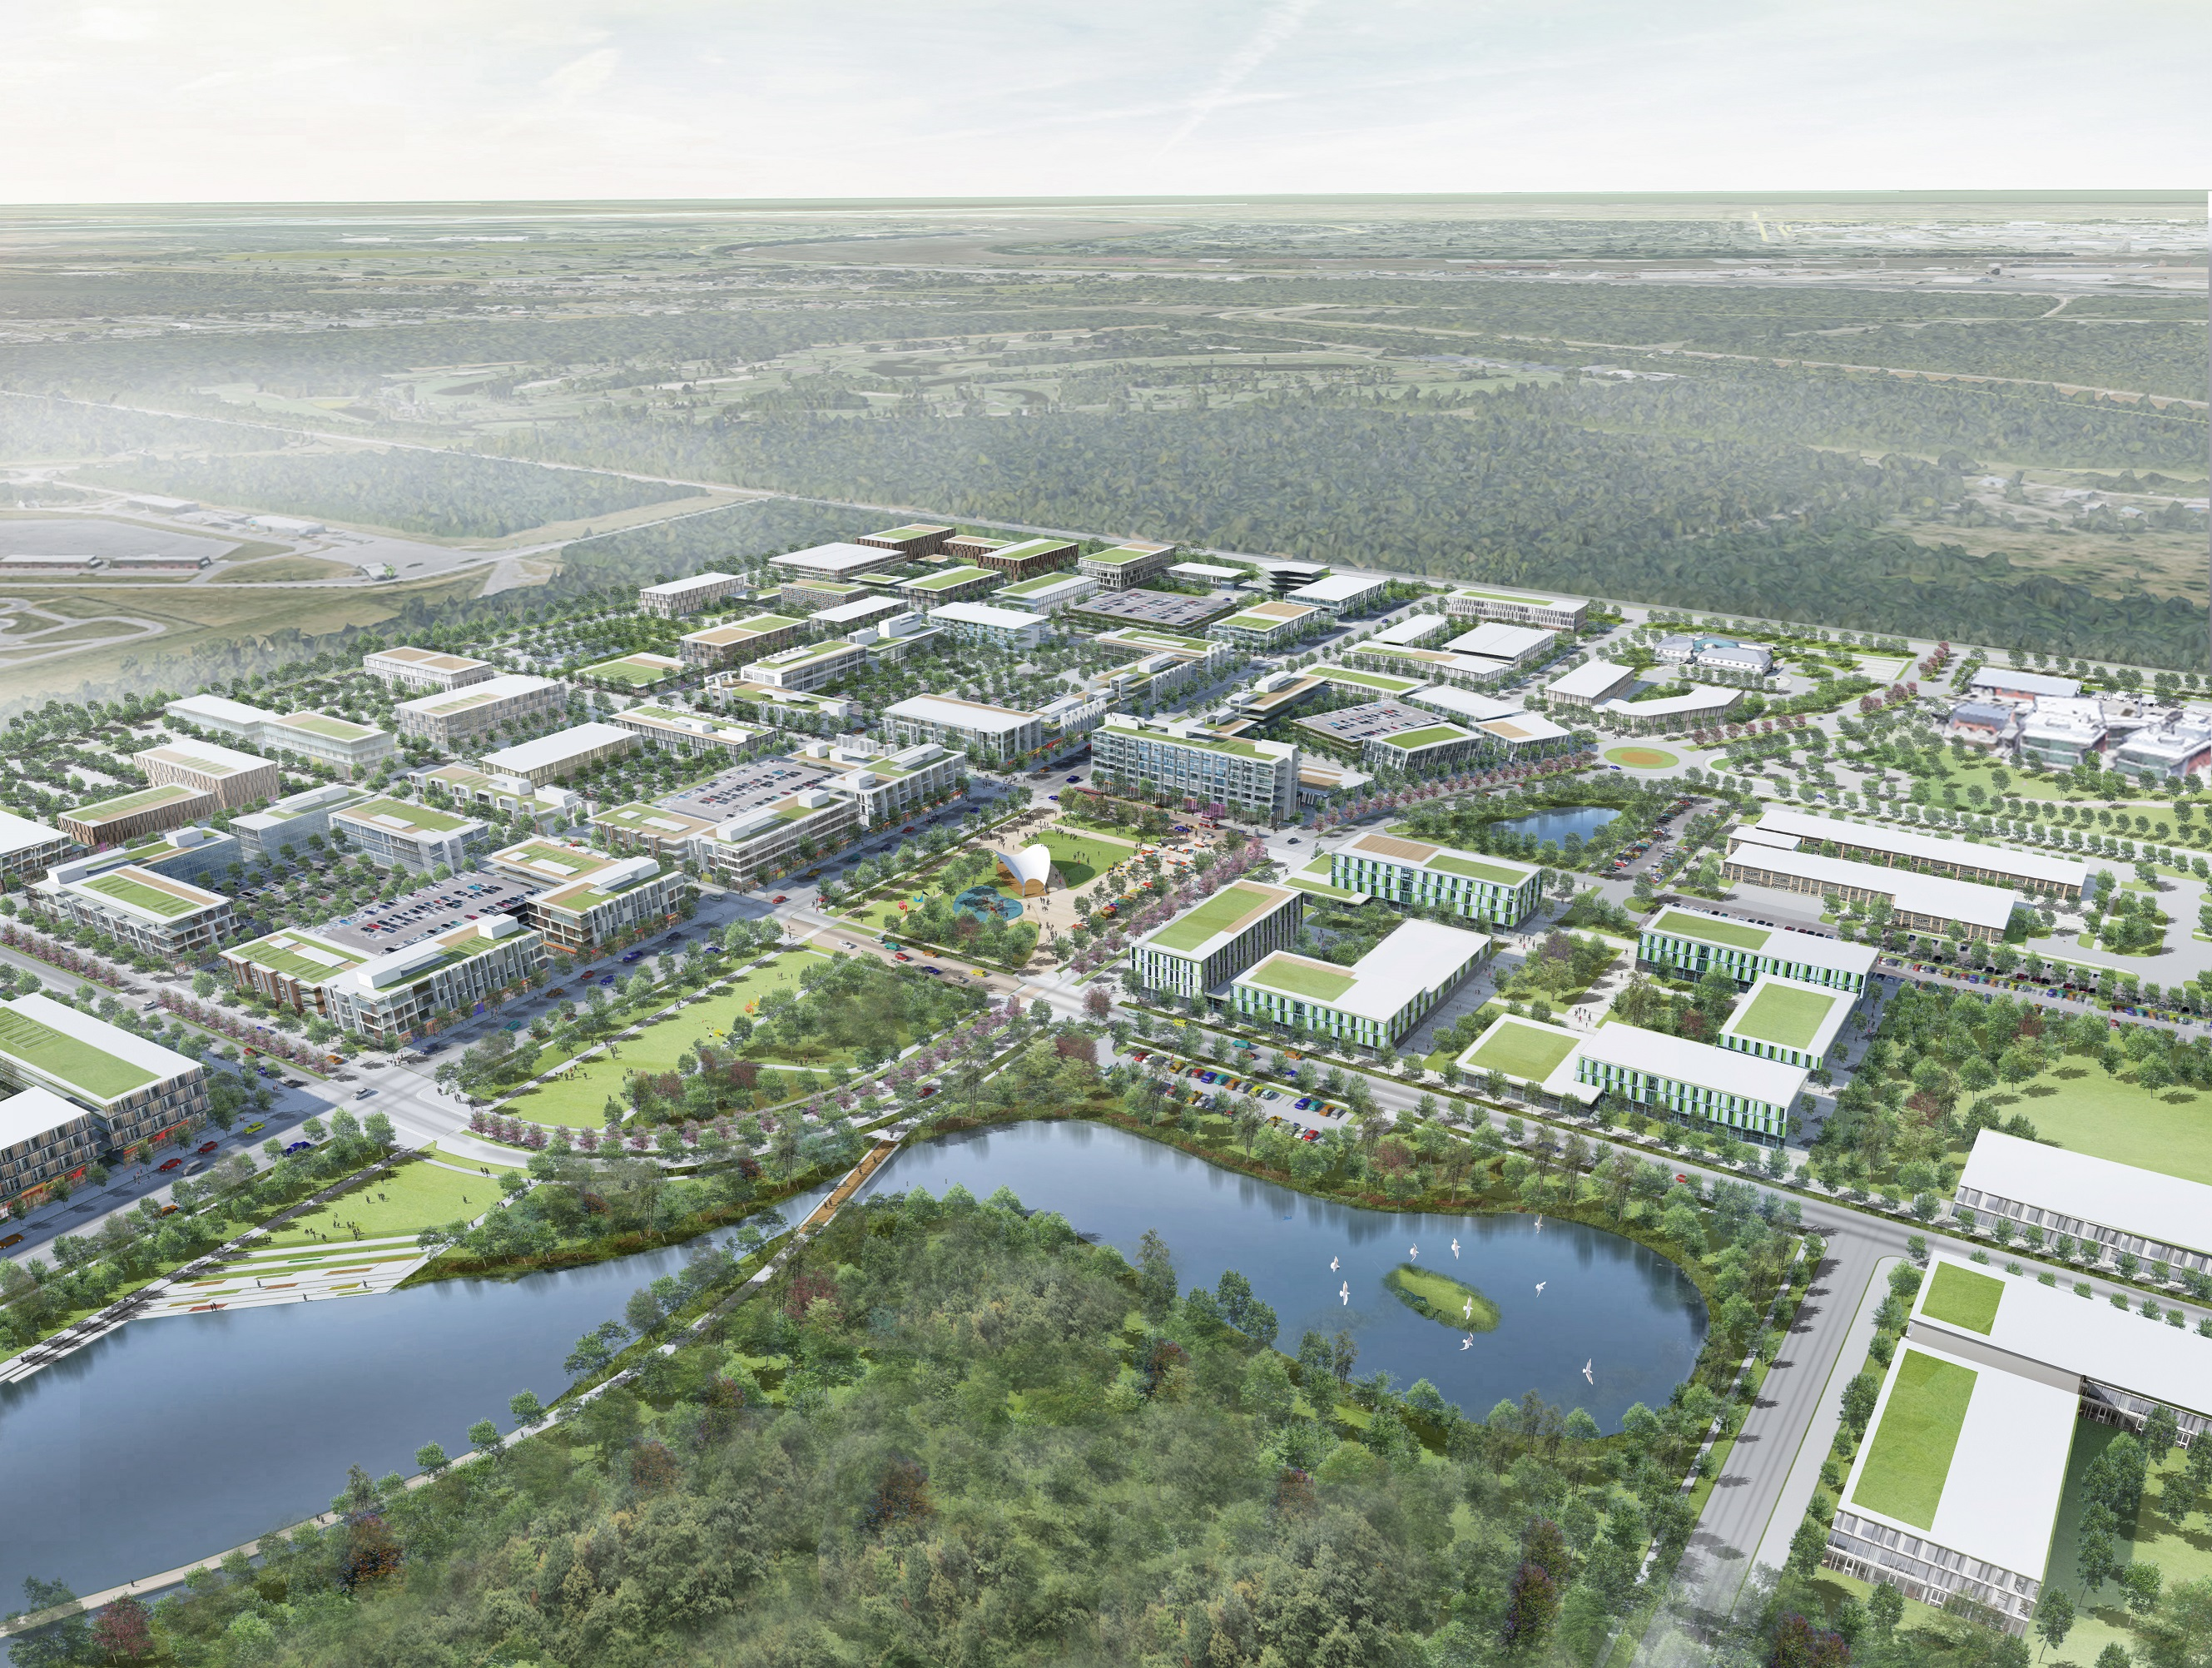 JEDCO unveils master plan for West Bank development